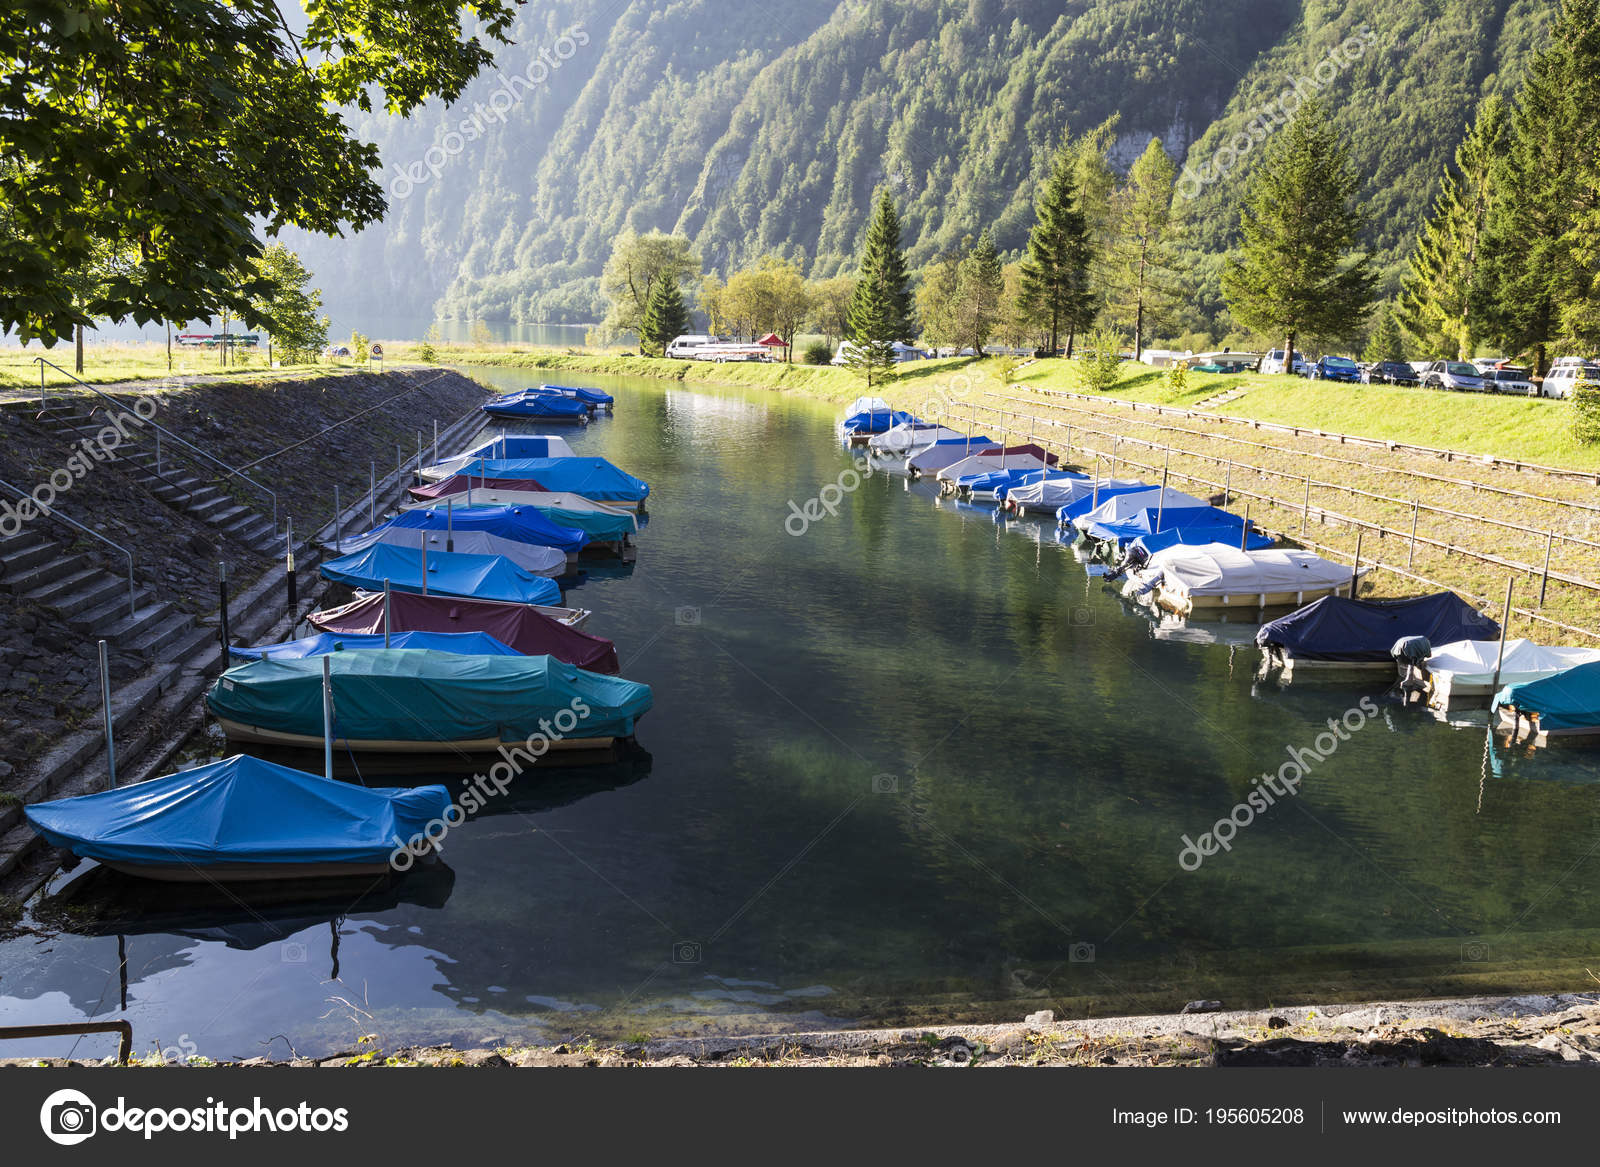 Camping On The Shore Of The Montain Lake Klontalersee Boats On